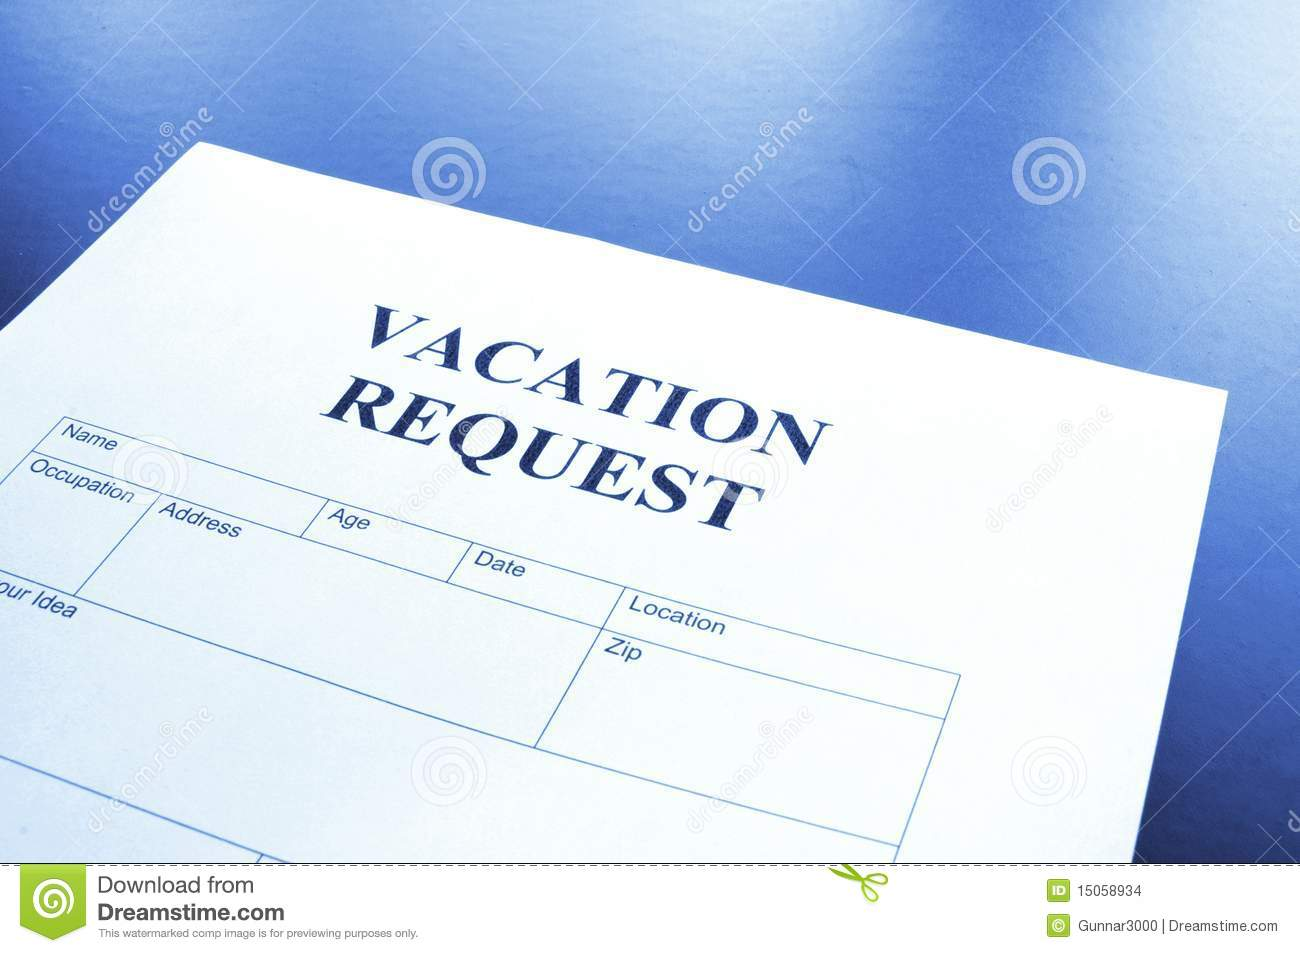 Vacation request form in business office showing holiday concept.